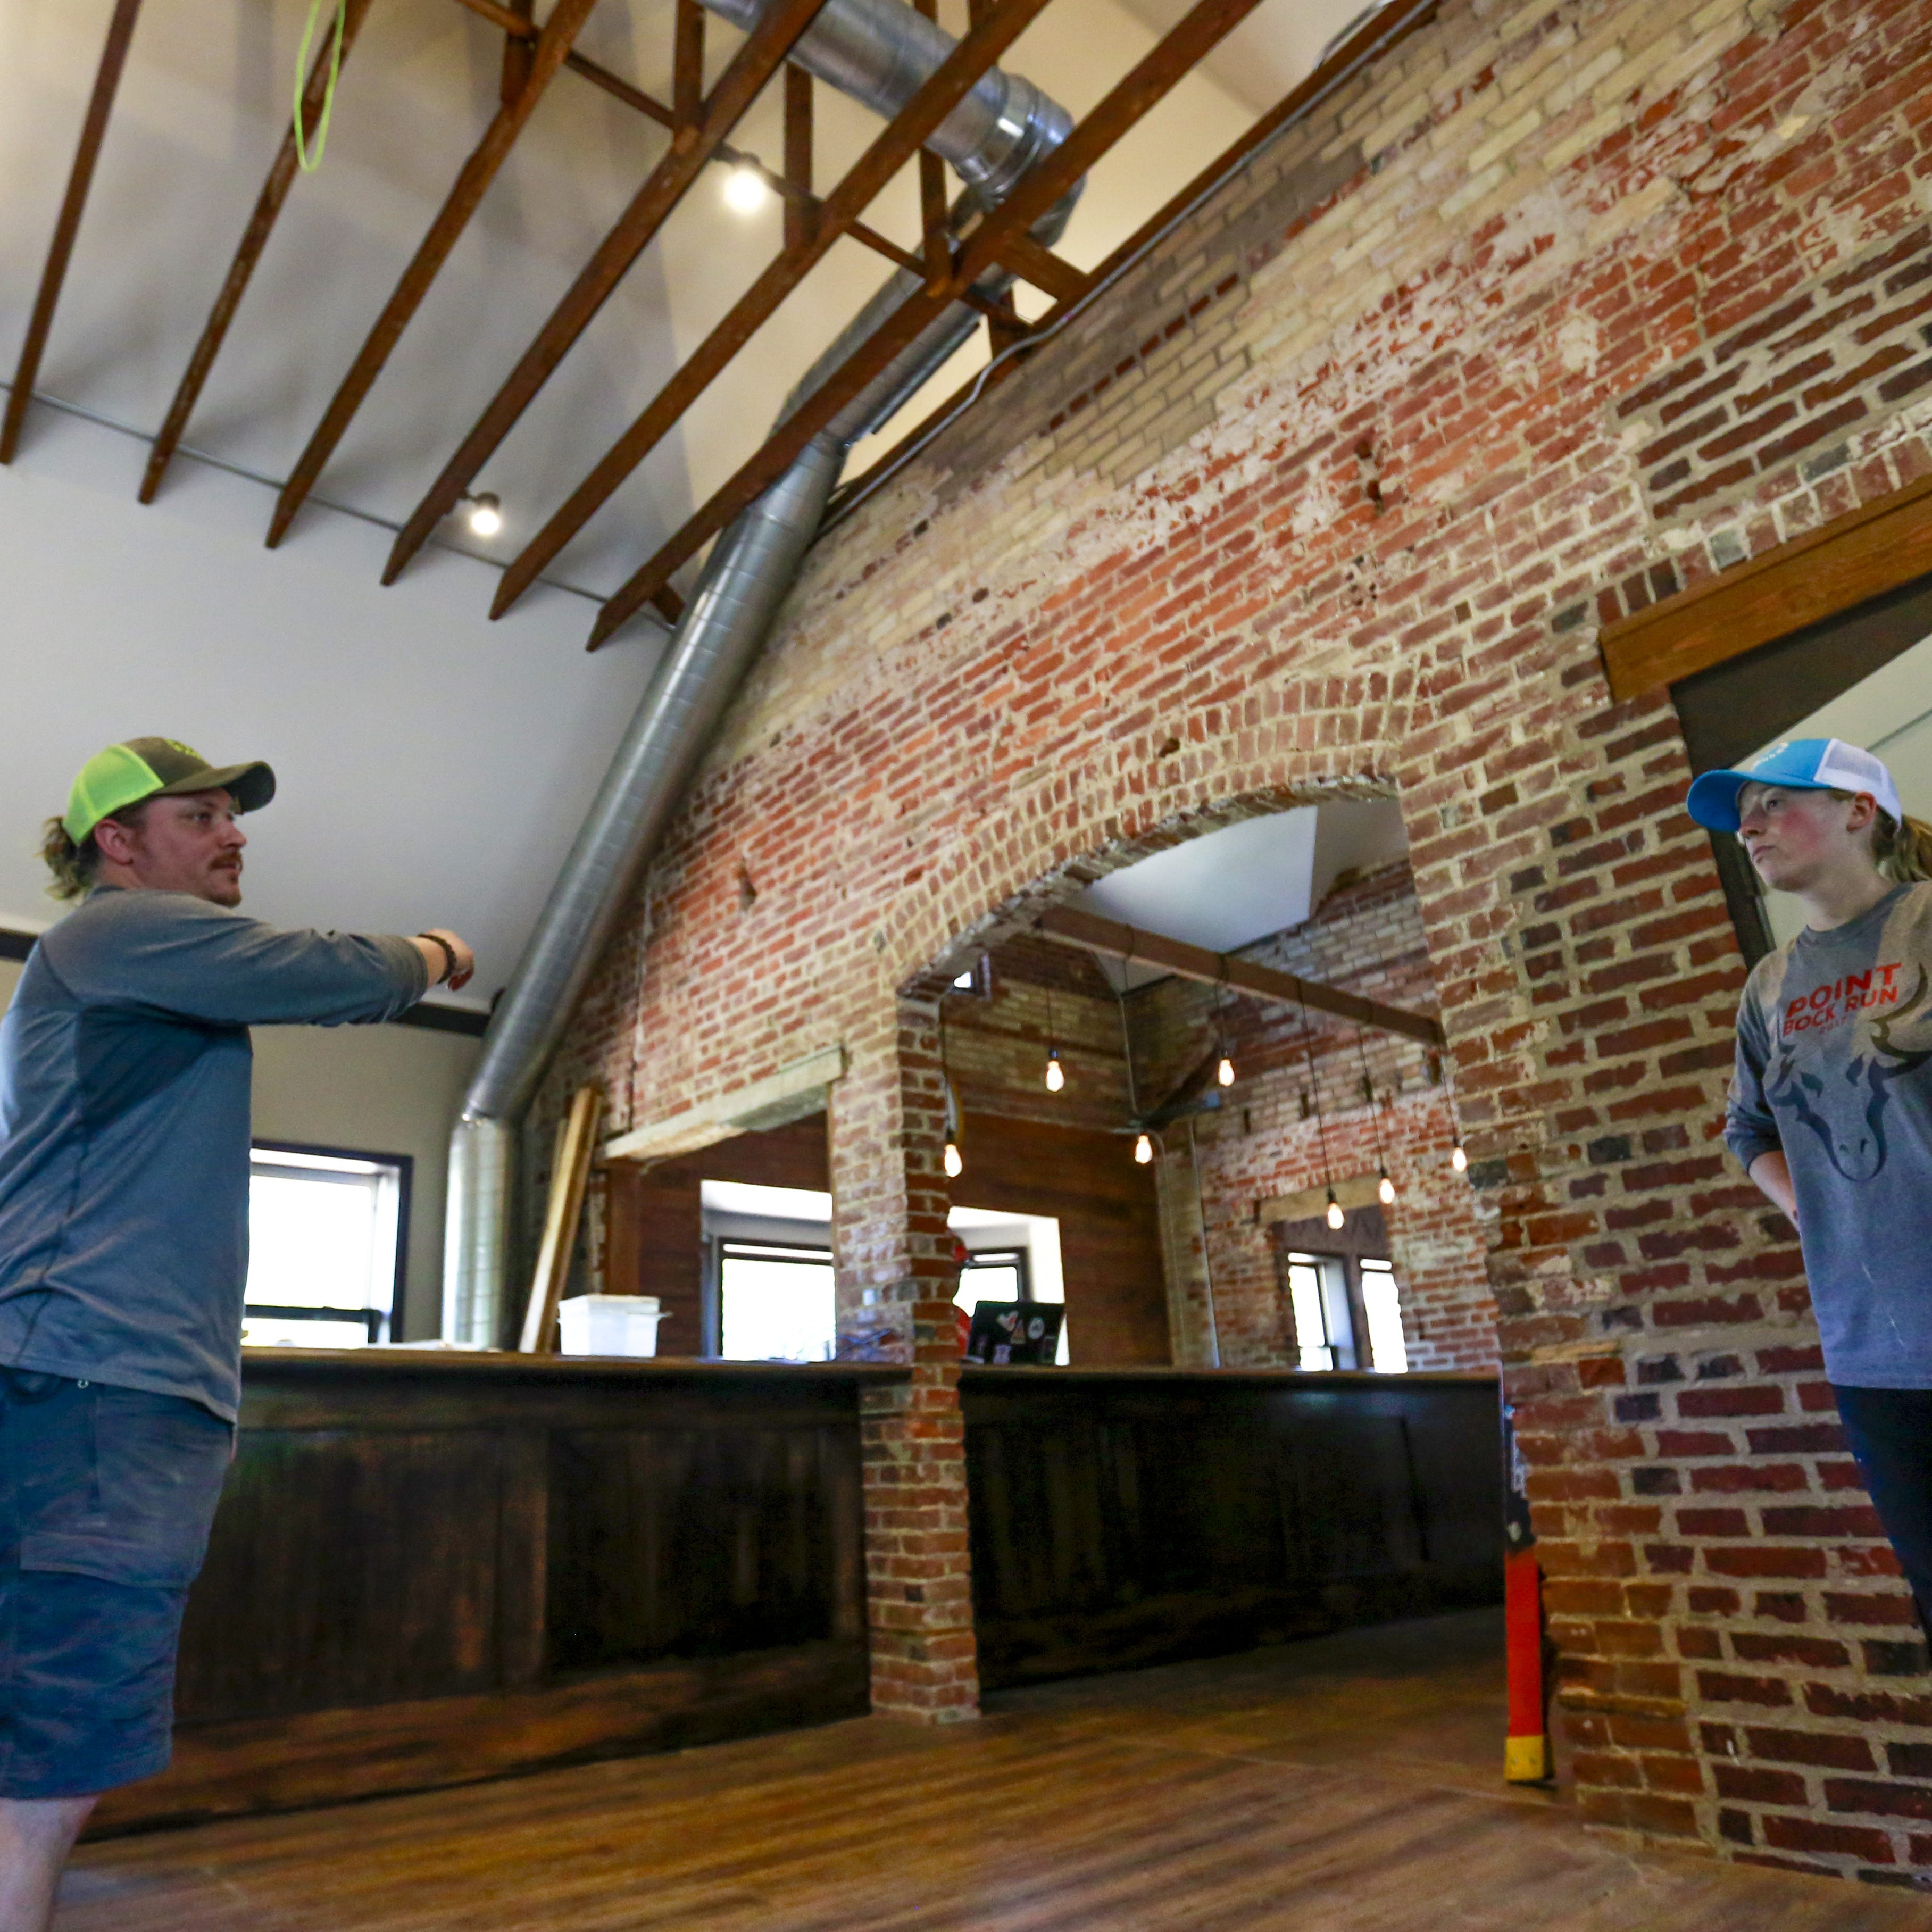 Timekeeper Distillery to open soon in Wausau train depot